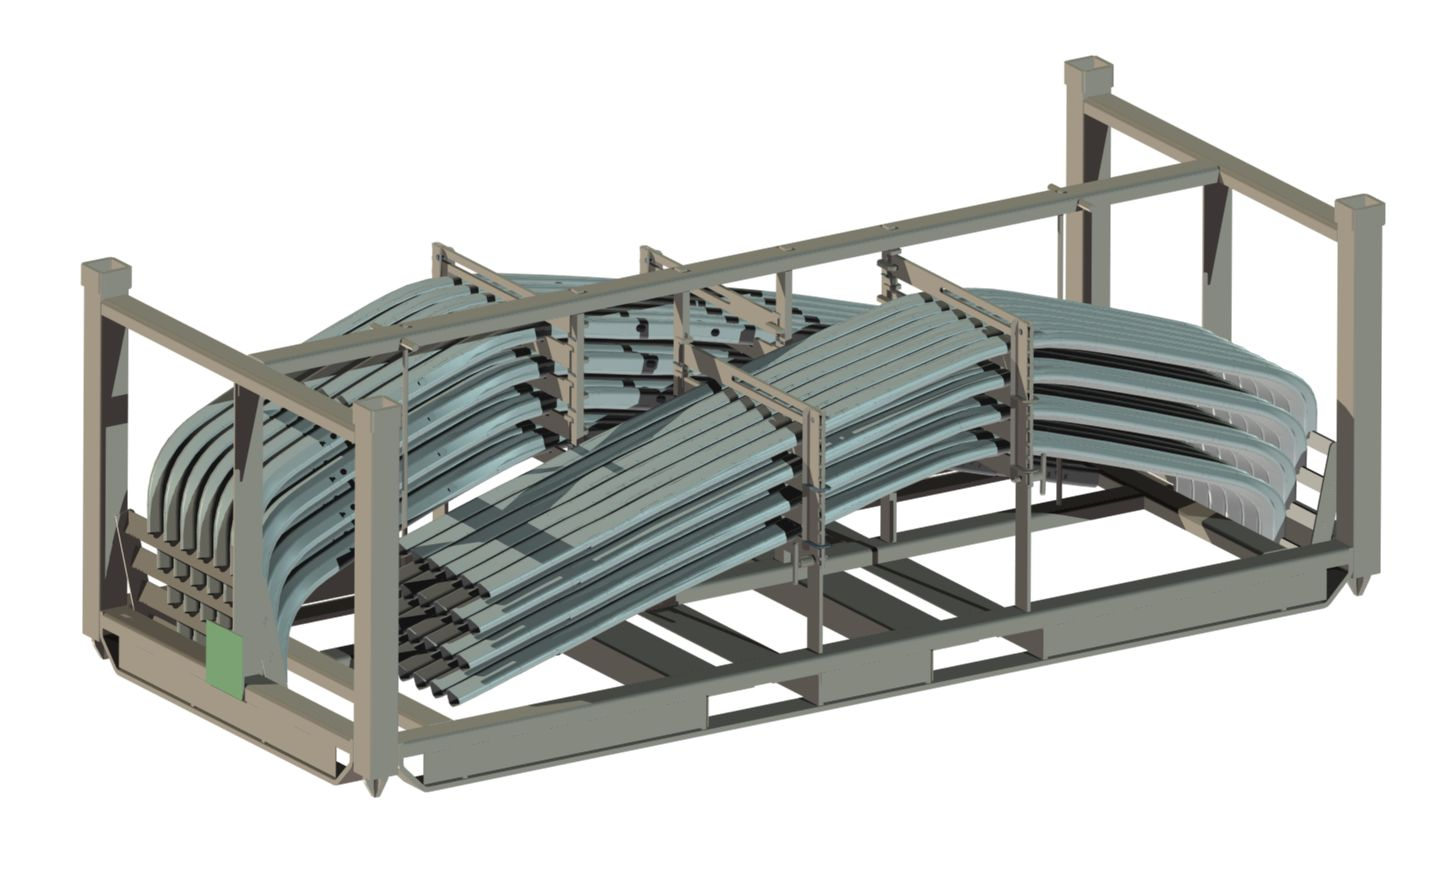 ROOF RAIL WITH PARTS